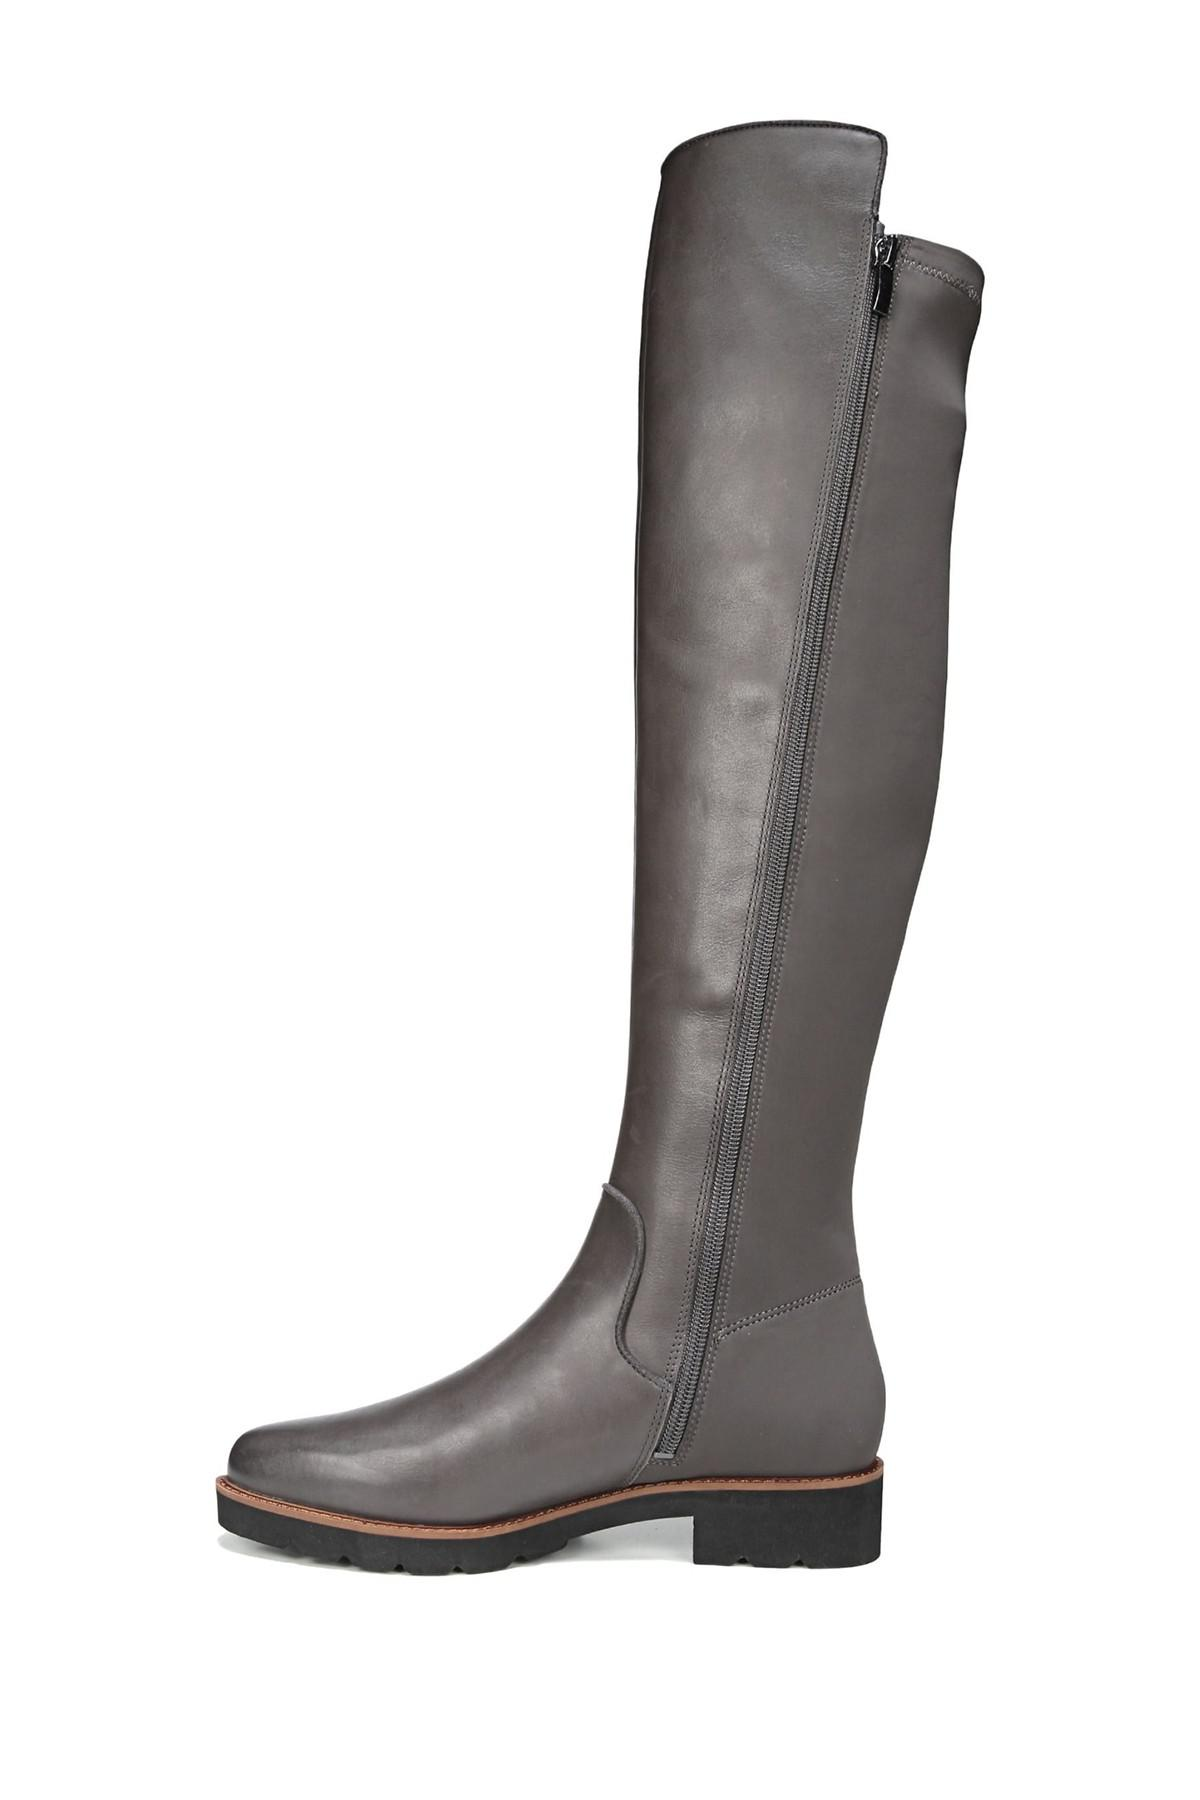 0a4252e8504 Franco Sarto - Black Benner Leather Over-the-knee Boot - Lyst. View  fullscreen